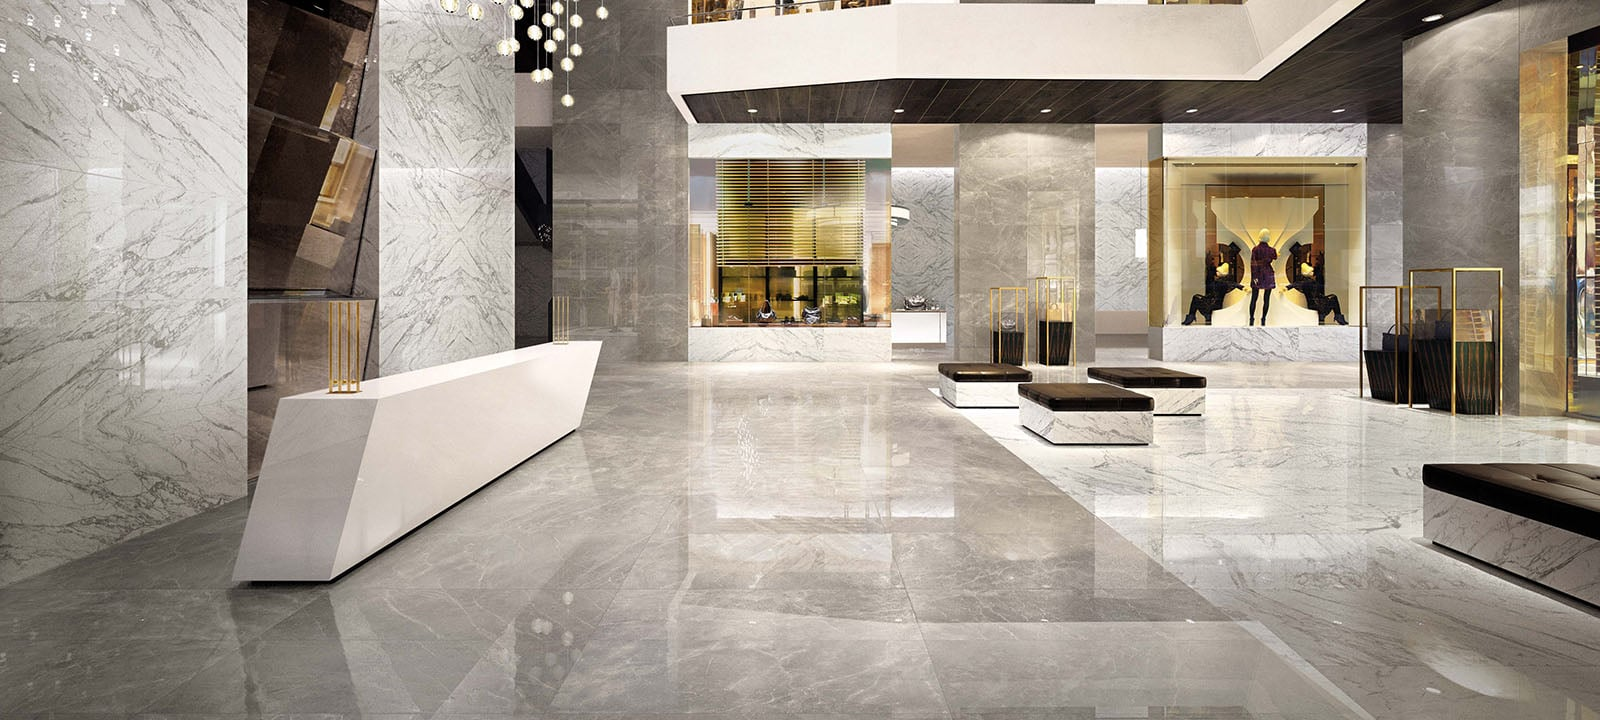 marble flooring contractors in dubai uae